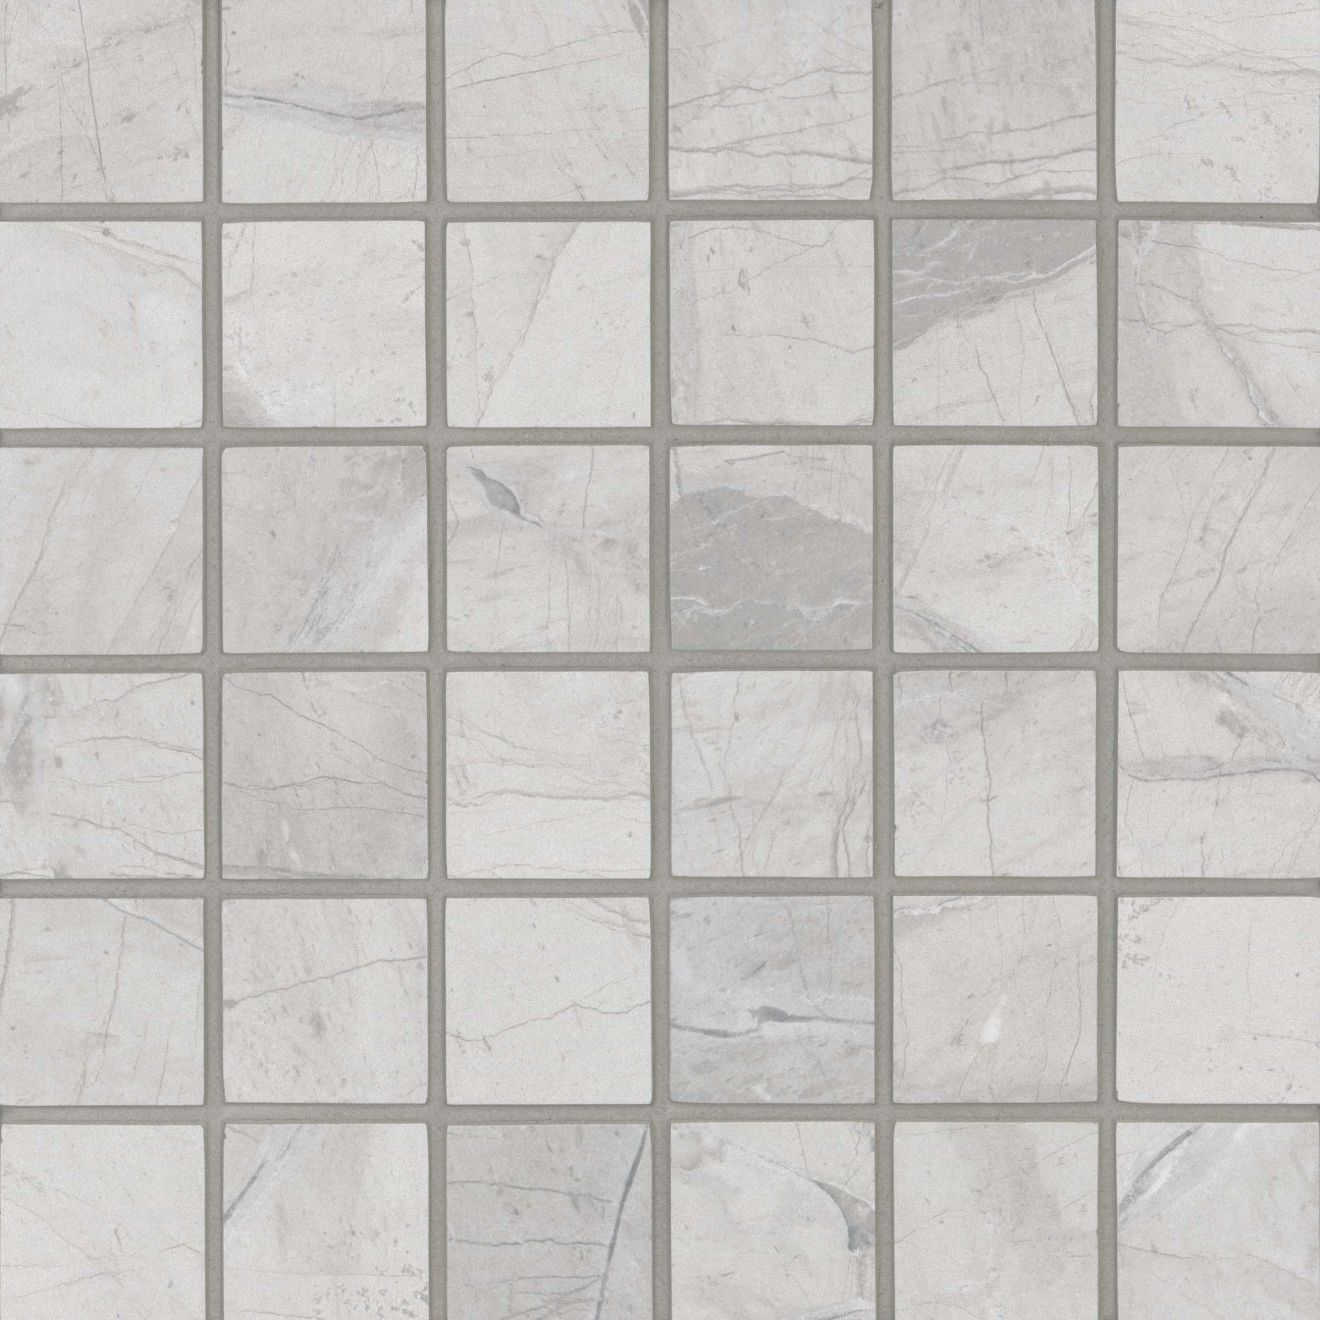 Tesoro Wall Mosaic in White